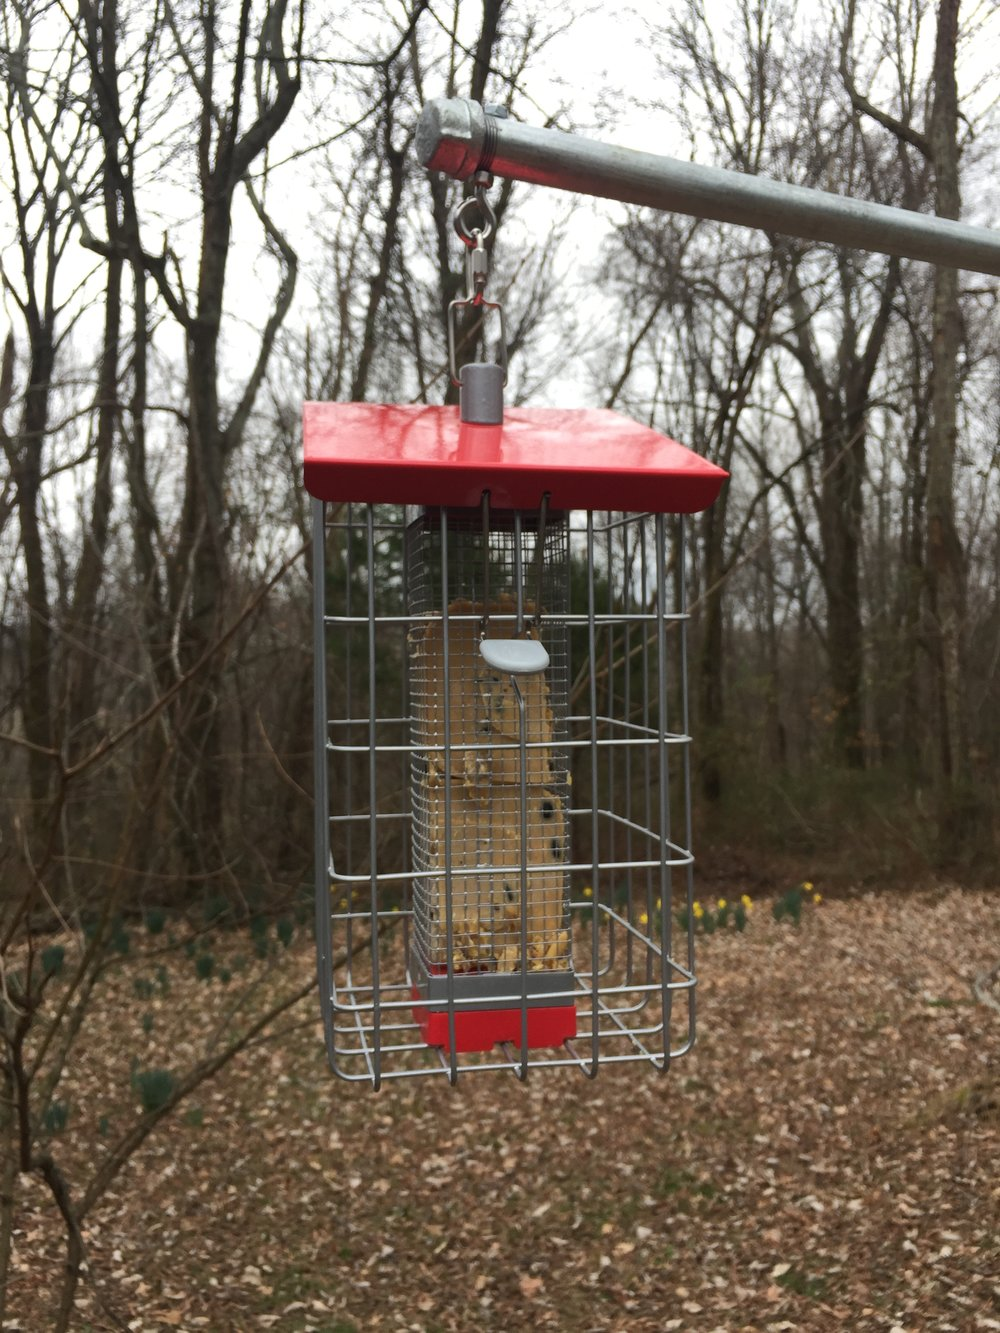 Geohaus peanut feeder is terrific for peanuts or suet.